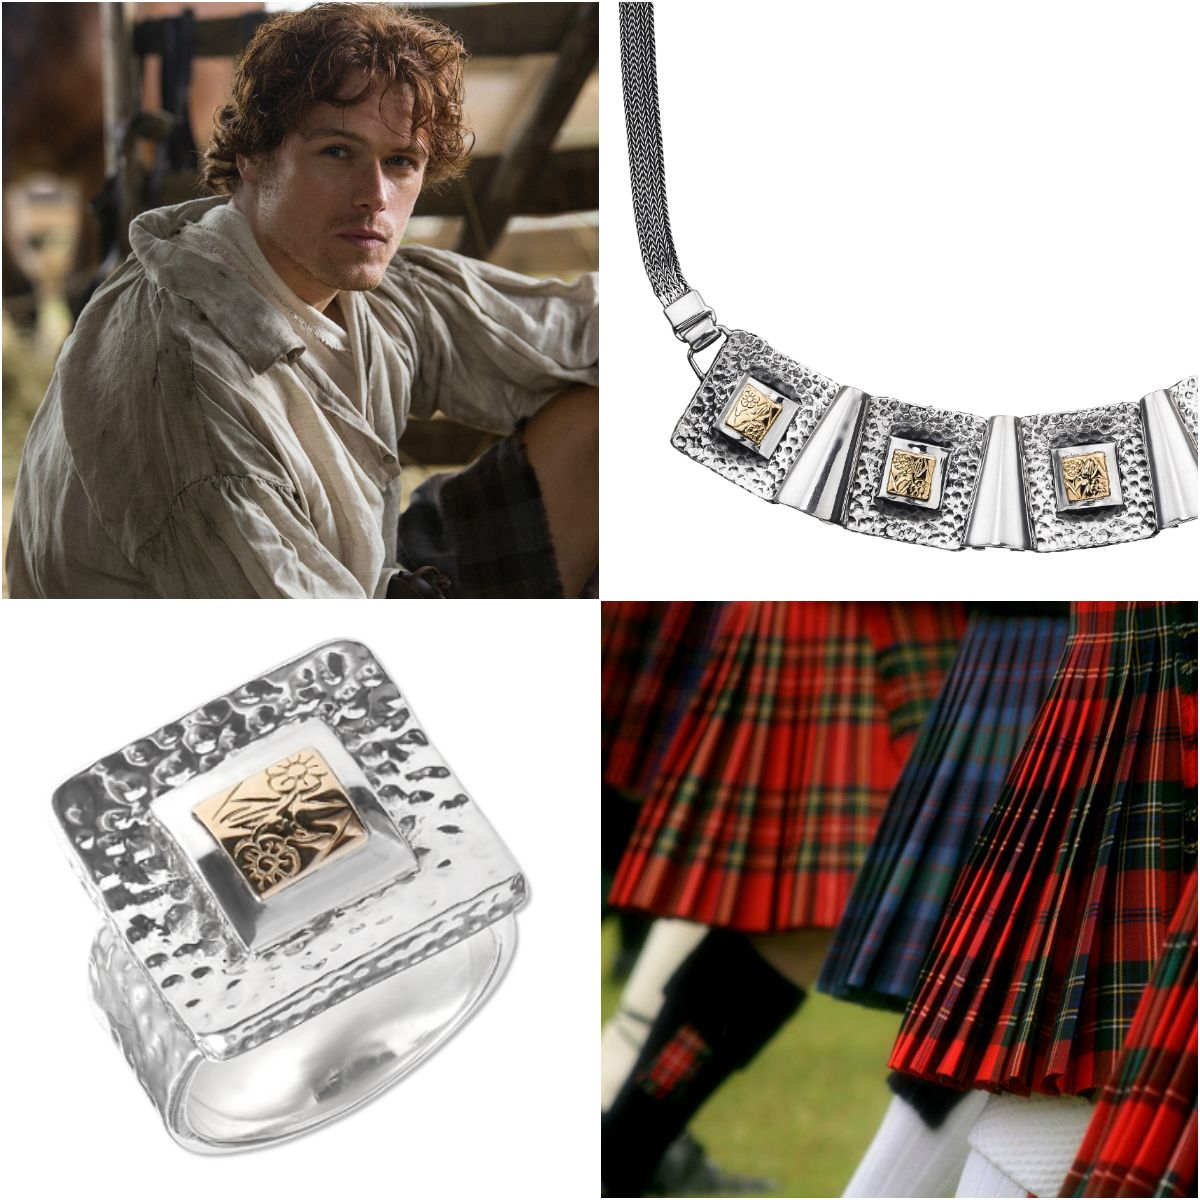 Shape of Gloria jewelry collection plays with highly popular today checked pattern, while Outlander TV show made many women go crazy about Jamie Fraser. So, Scottish style is in the trend as ever. The look of a brave highlander's faithful girlfriend includes a tartan skirt plus jewelry similar to those pieces women wore in the Medieval age. Shop unusual and trendy jewelry styles at http://zanggarts.com/